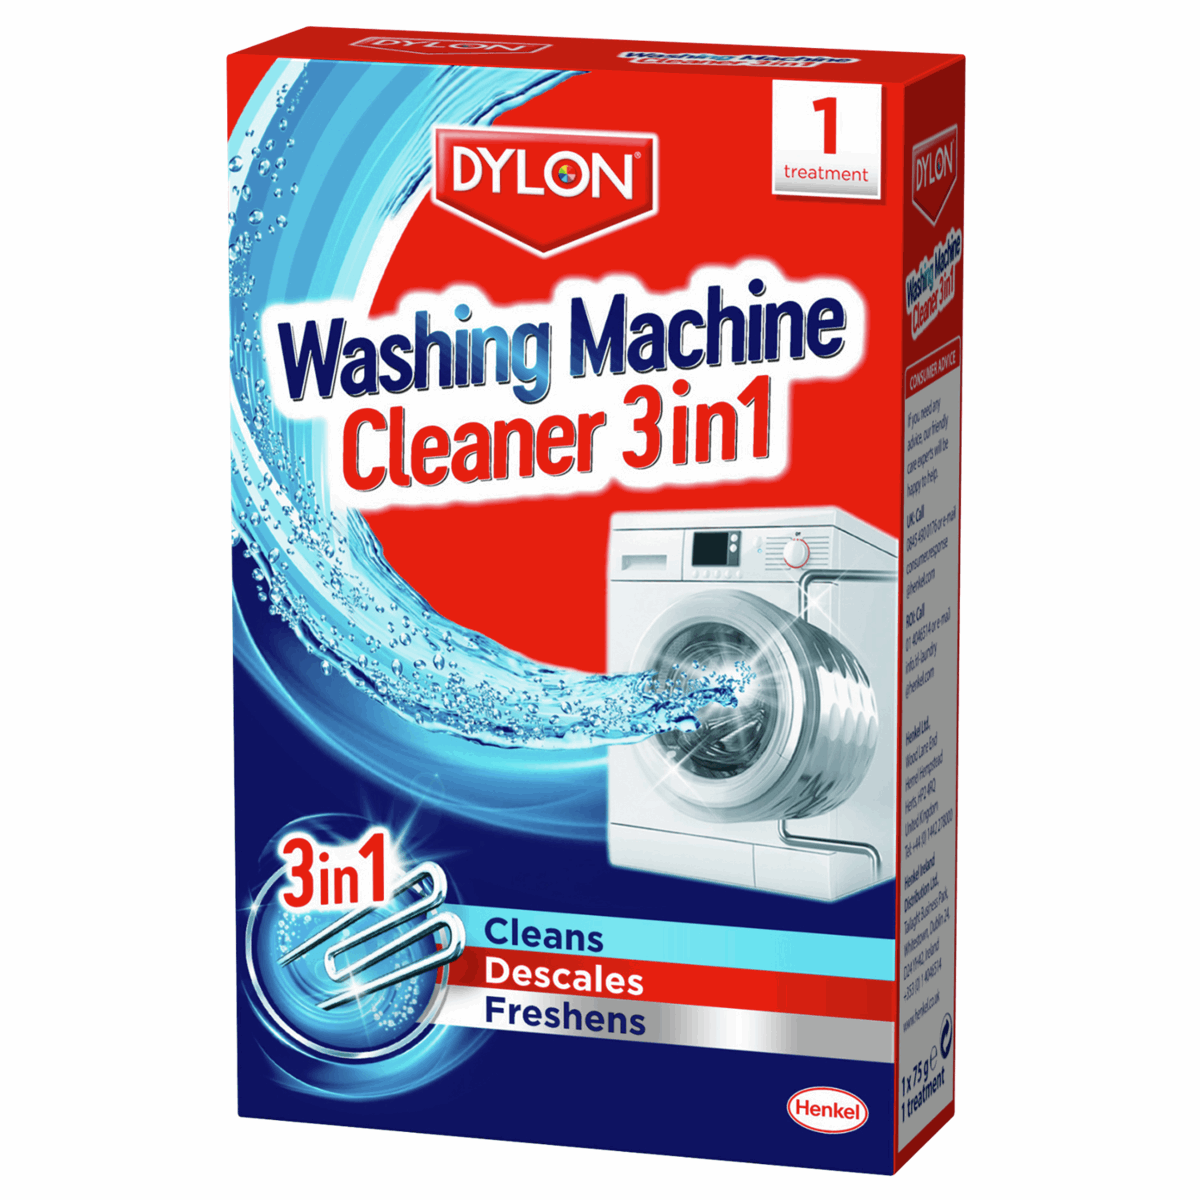 Picture of Dylon Washing Machine Cleaner: 6 Packs x 1 Treatment